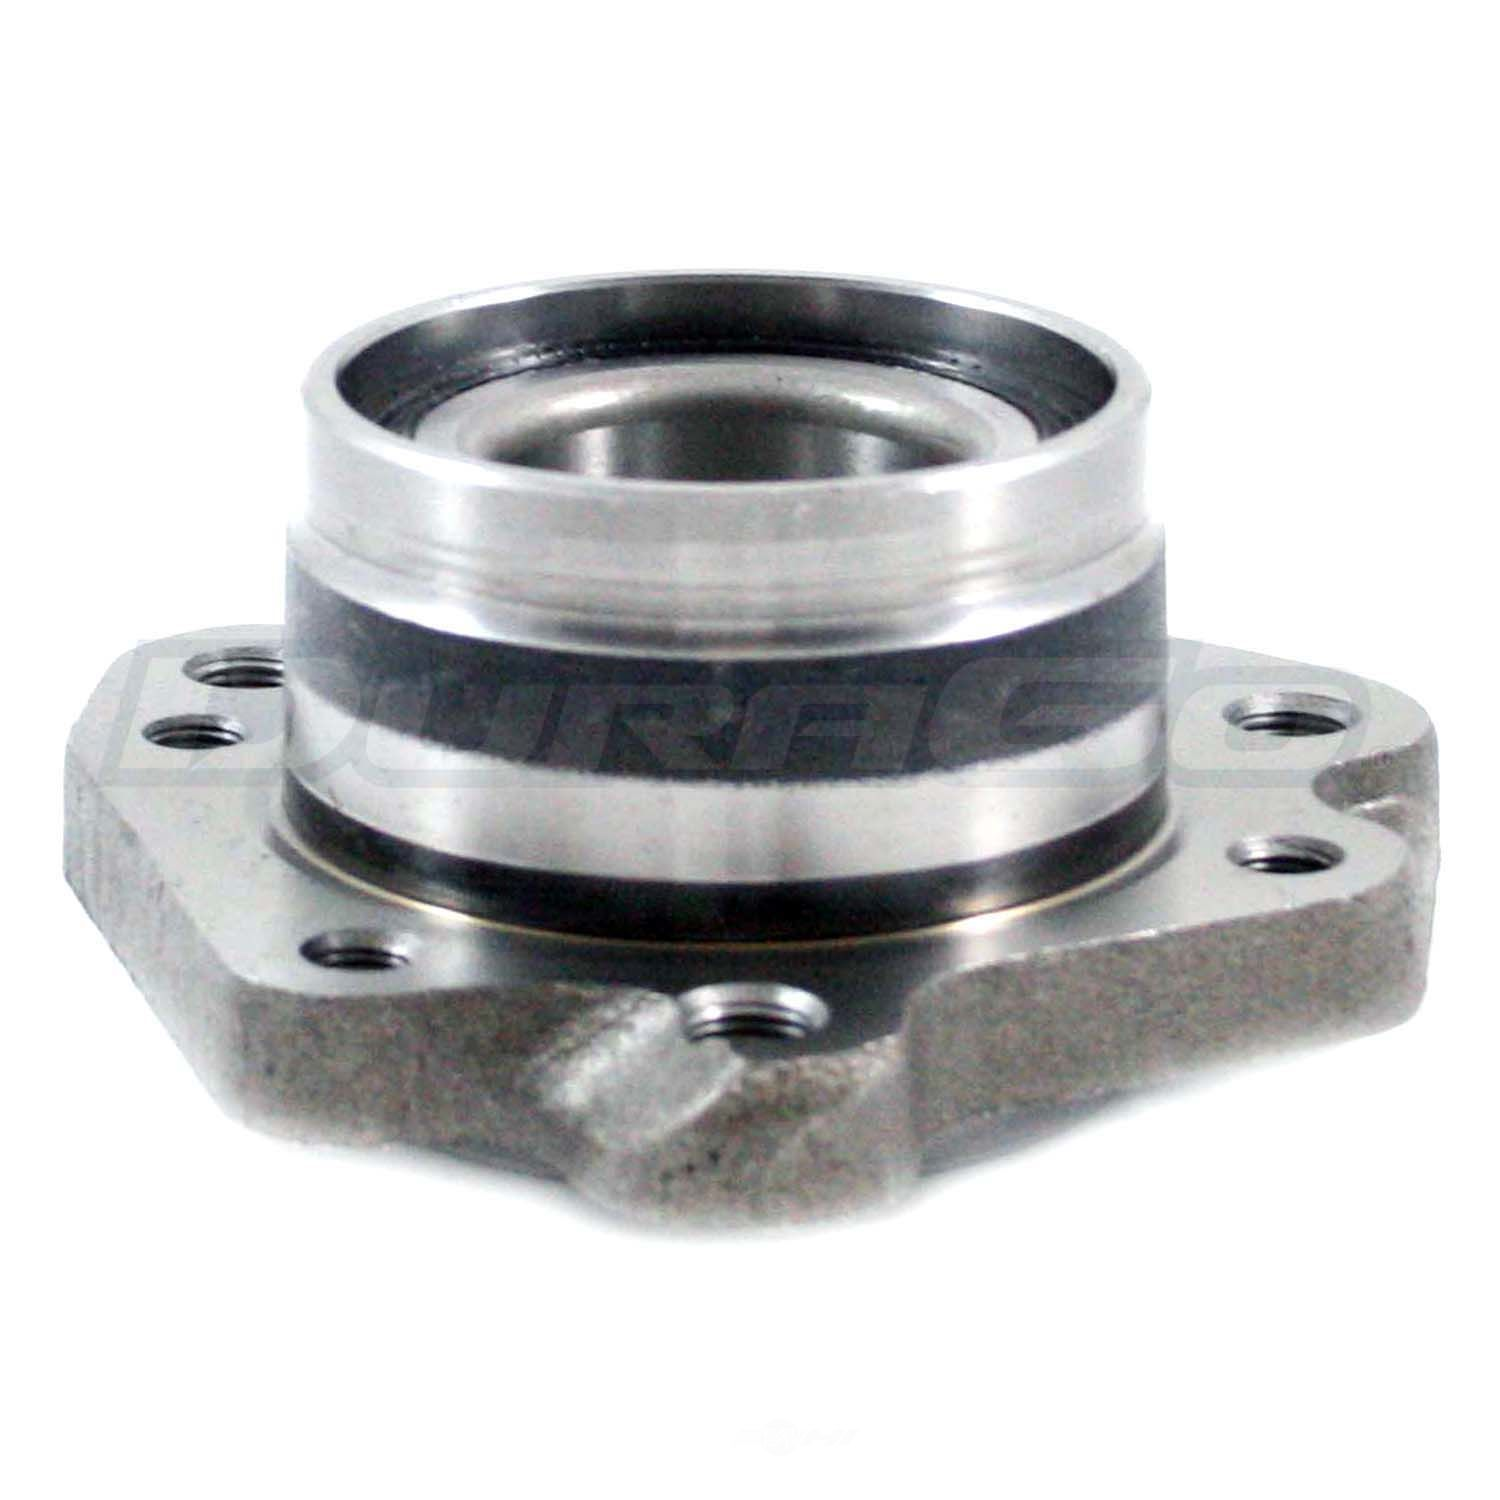 DURAGO - Wheel Bearing Assembly - D48 295-12166